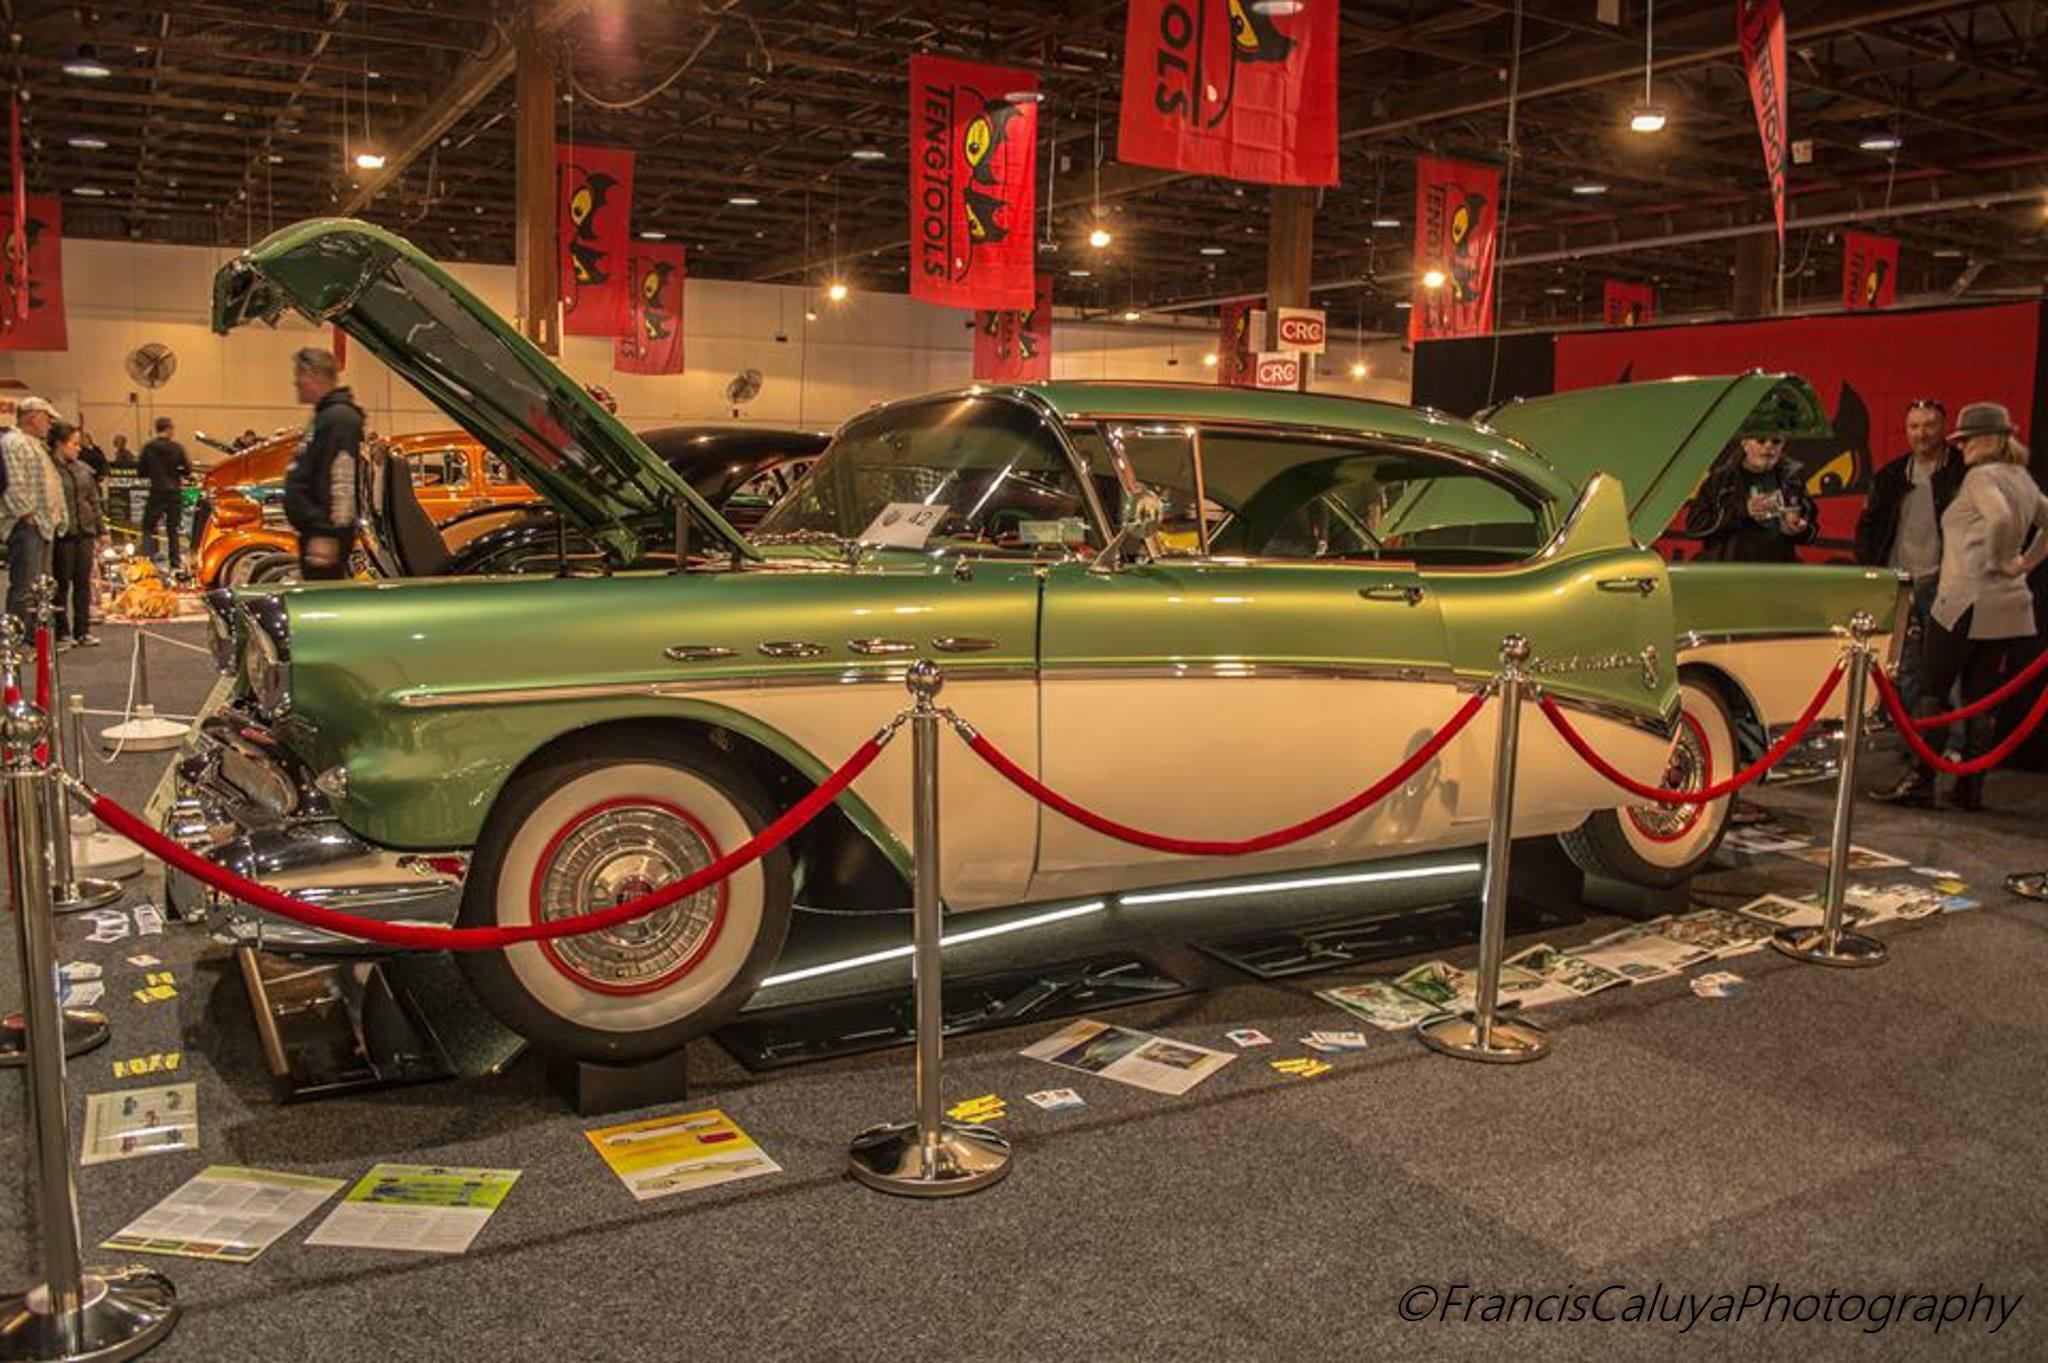 1957 Buick Roadmaster prepared by R3 Fabrications